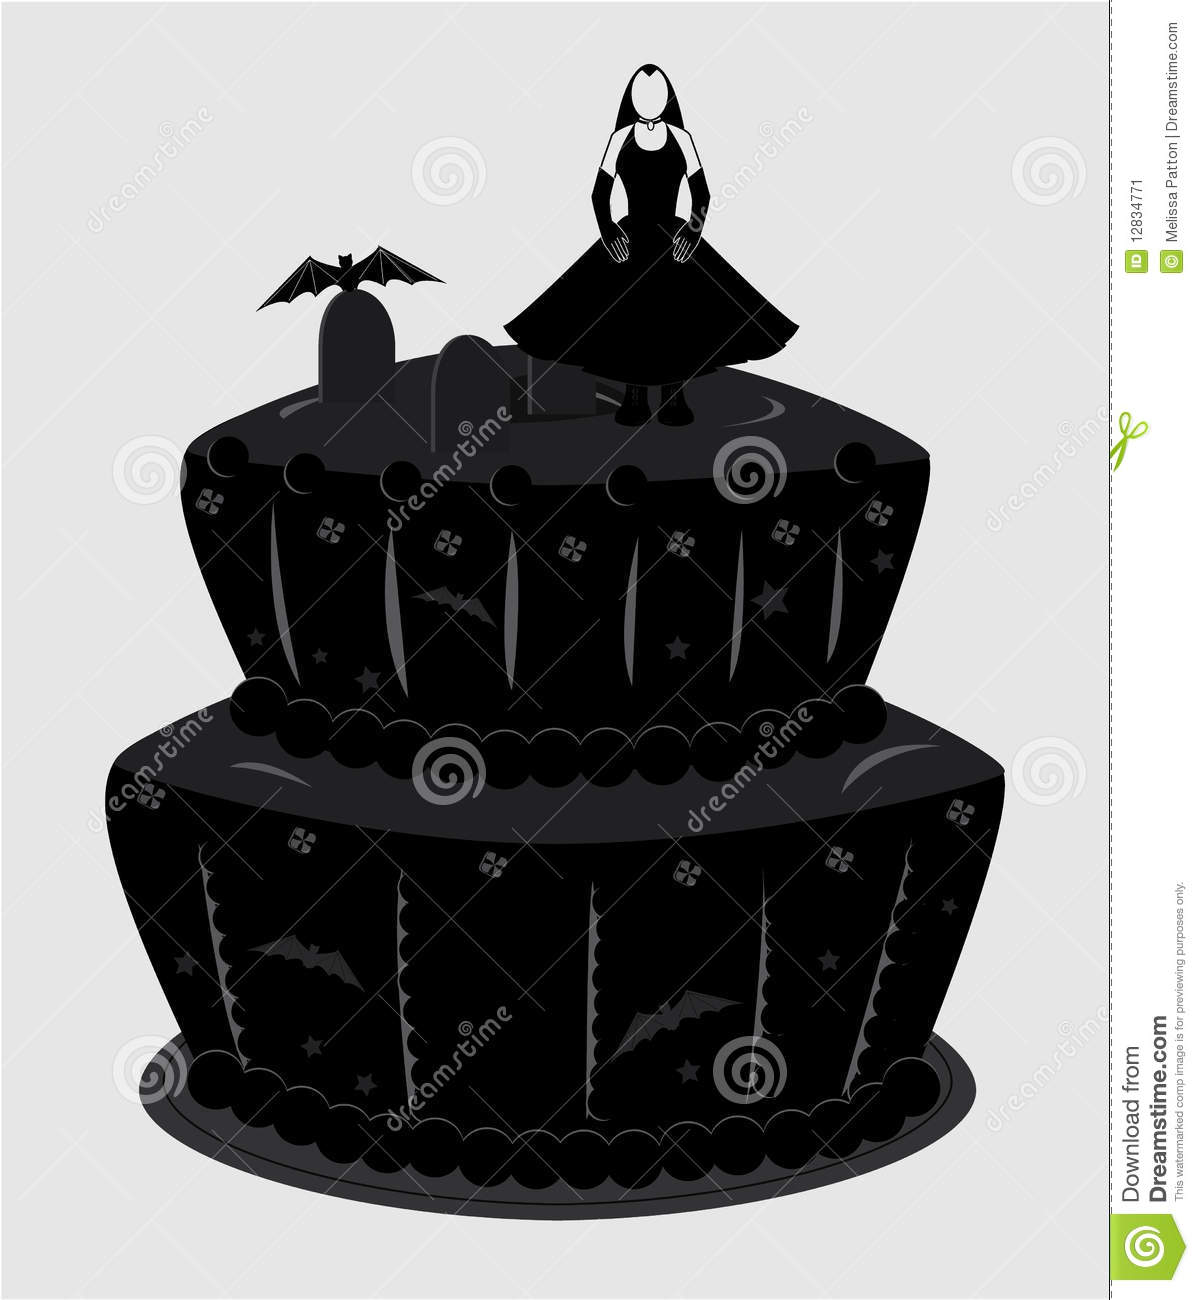 Swell Goth Cake Stock Vector Illustration Of Female Decorated 12834771 Birthday Cards Printable Benkemecafe Filternl